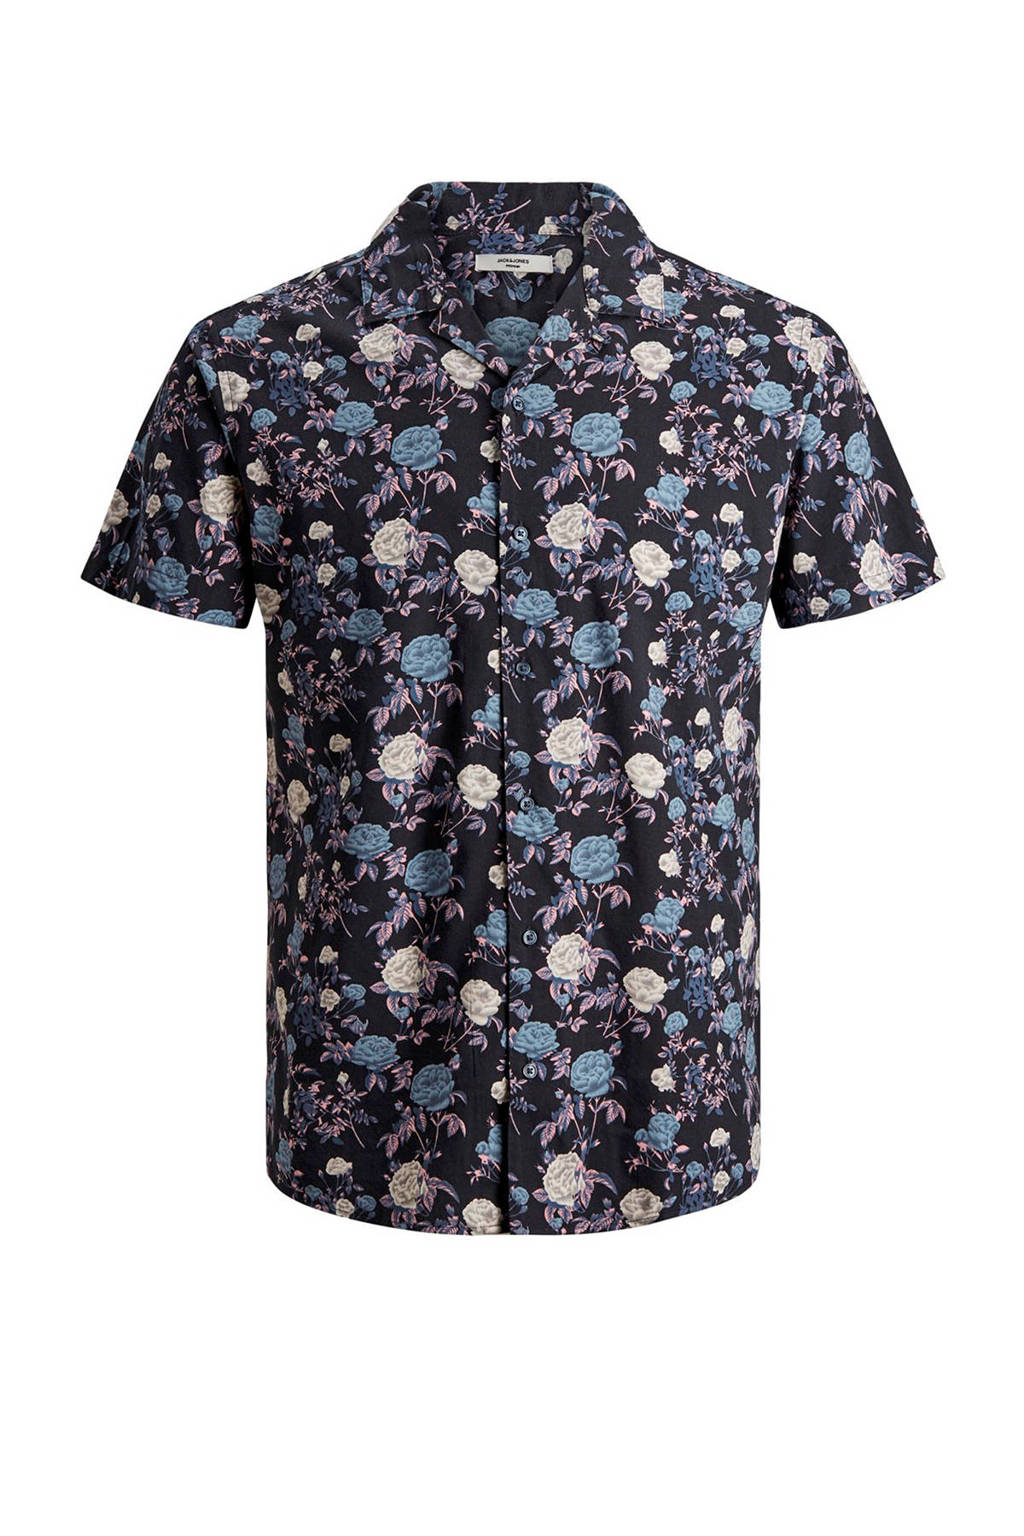 JACK & JONES PREMIUM overhemd met all-over print marine, Marine/Multi-kleuren